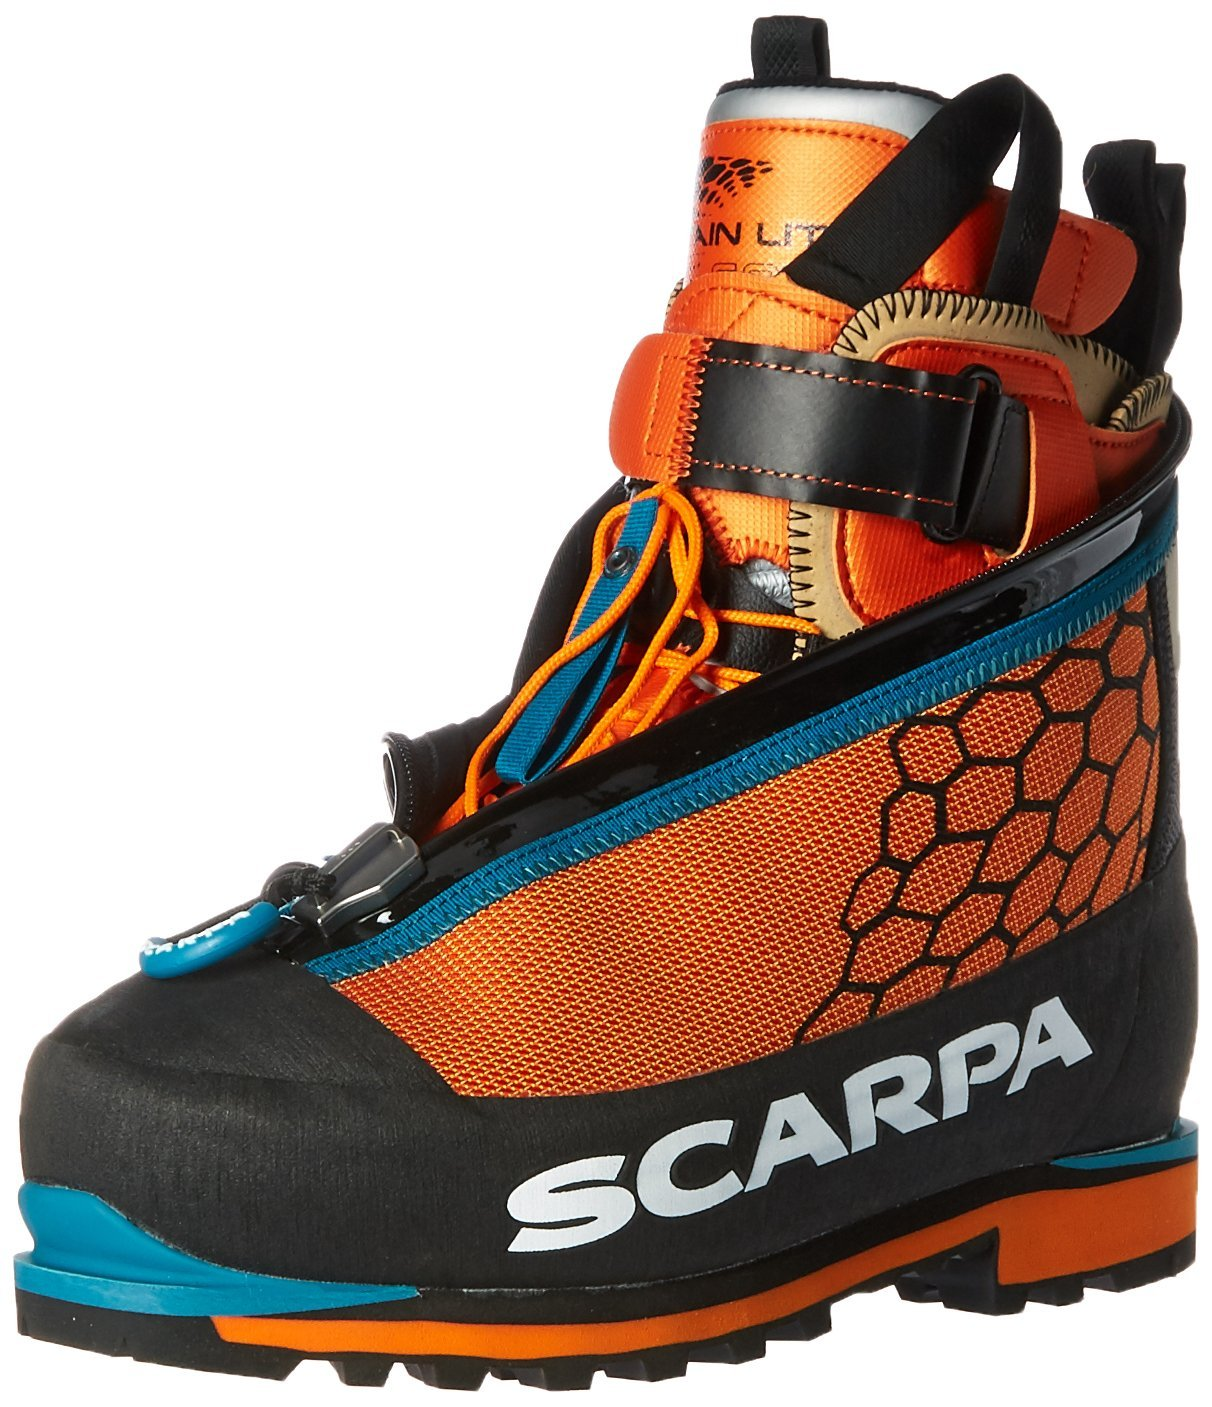 Scarpa Phantom 6000 Mountaineering Boot, Black/Orange, 44 EU/10.5 M US